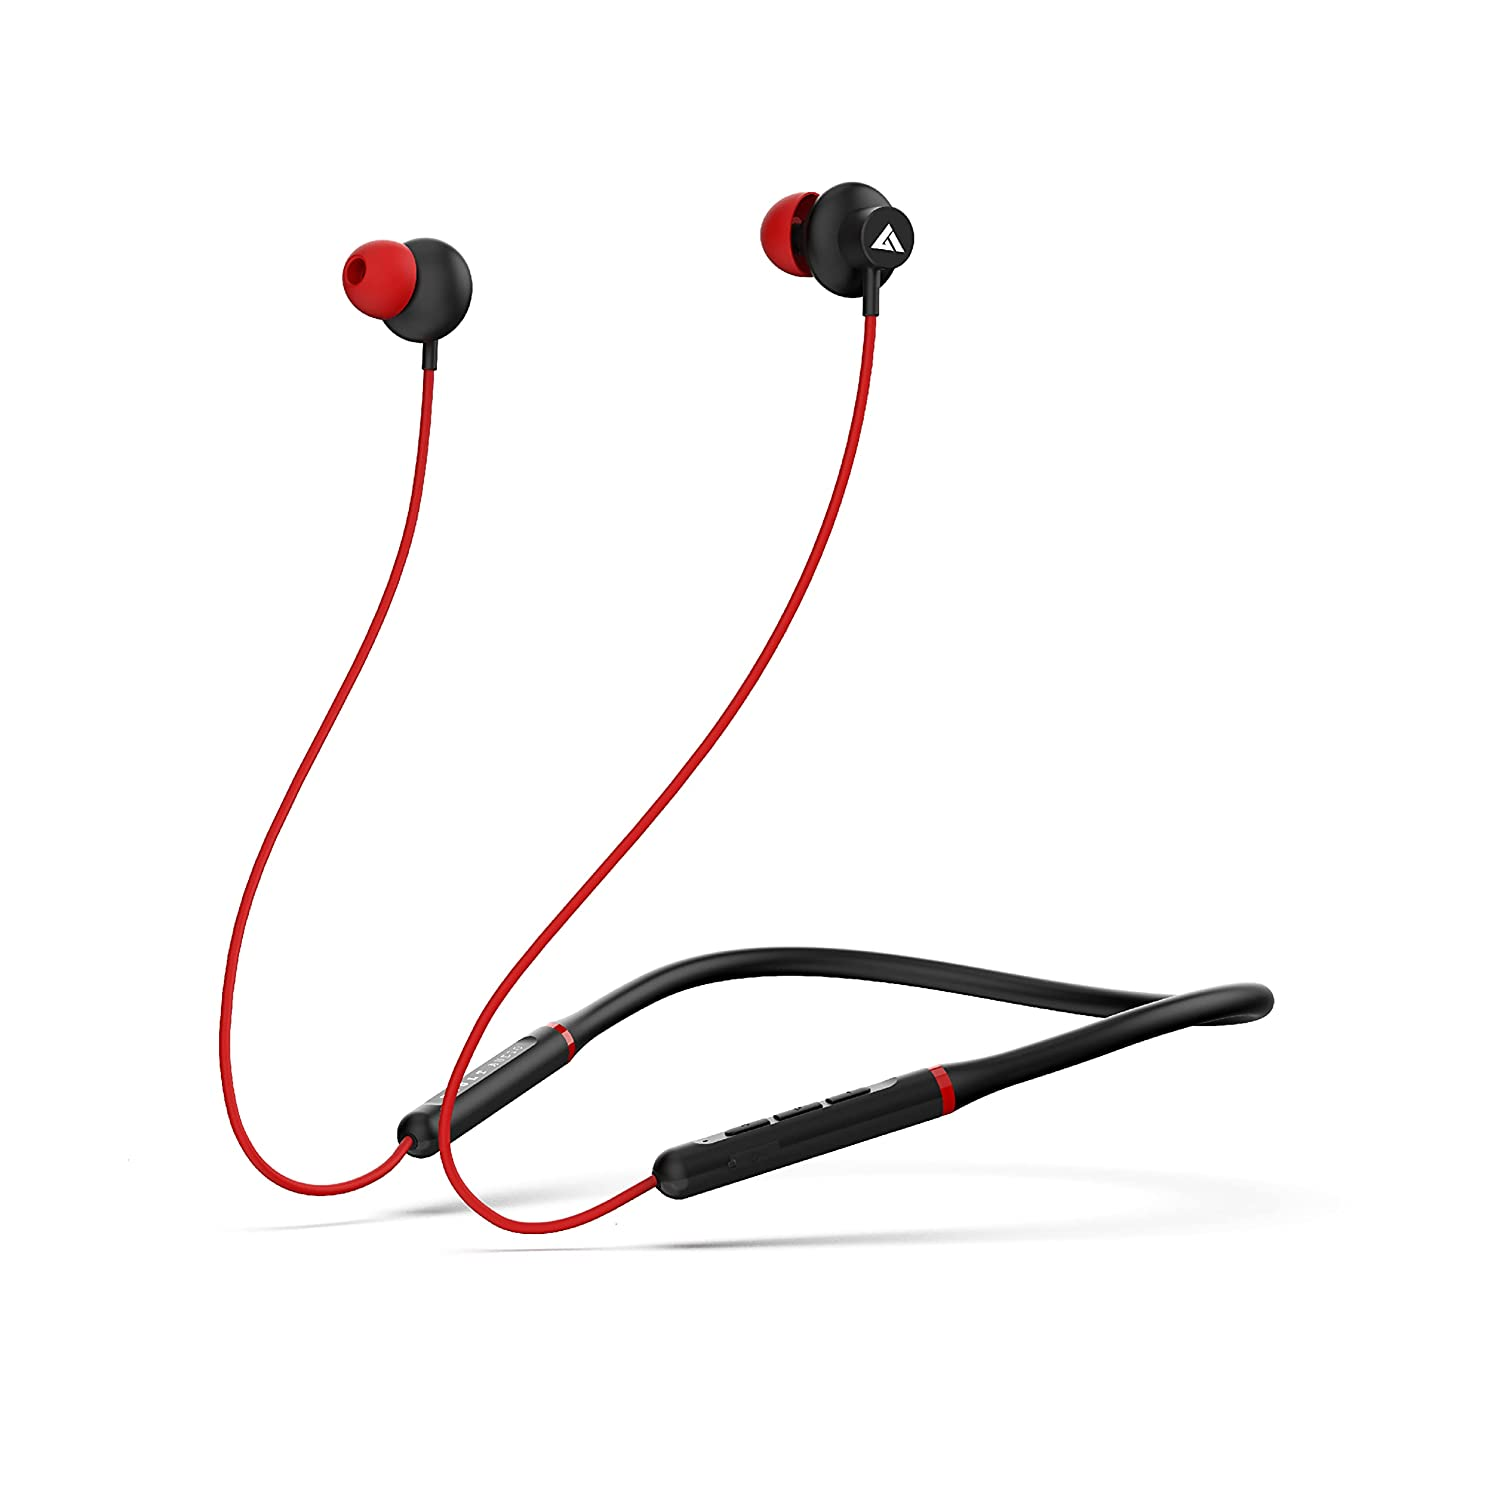 Boult Audio Probass X1 Air Bluetooth Neckband Launched